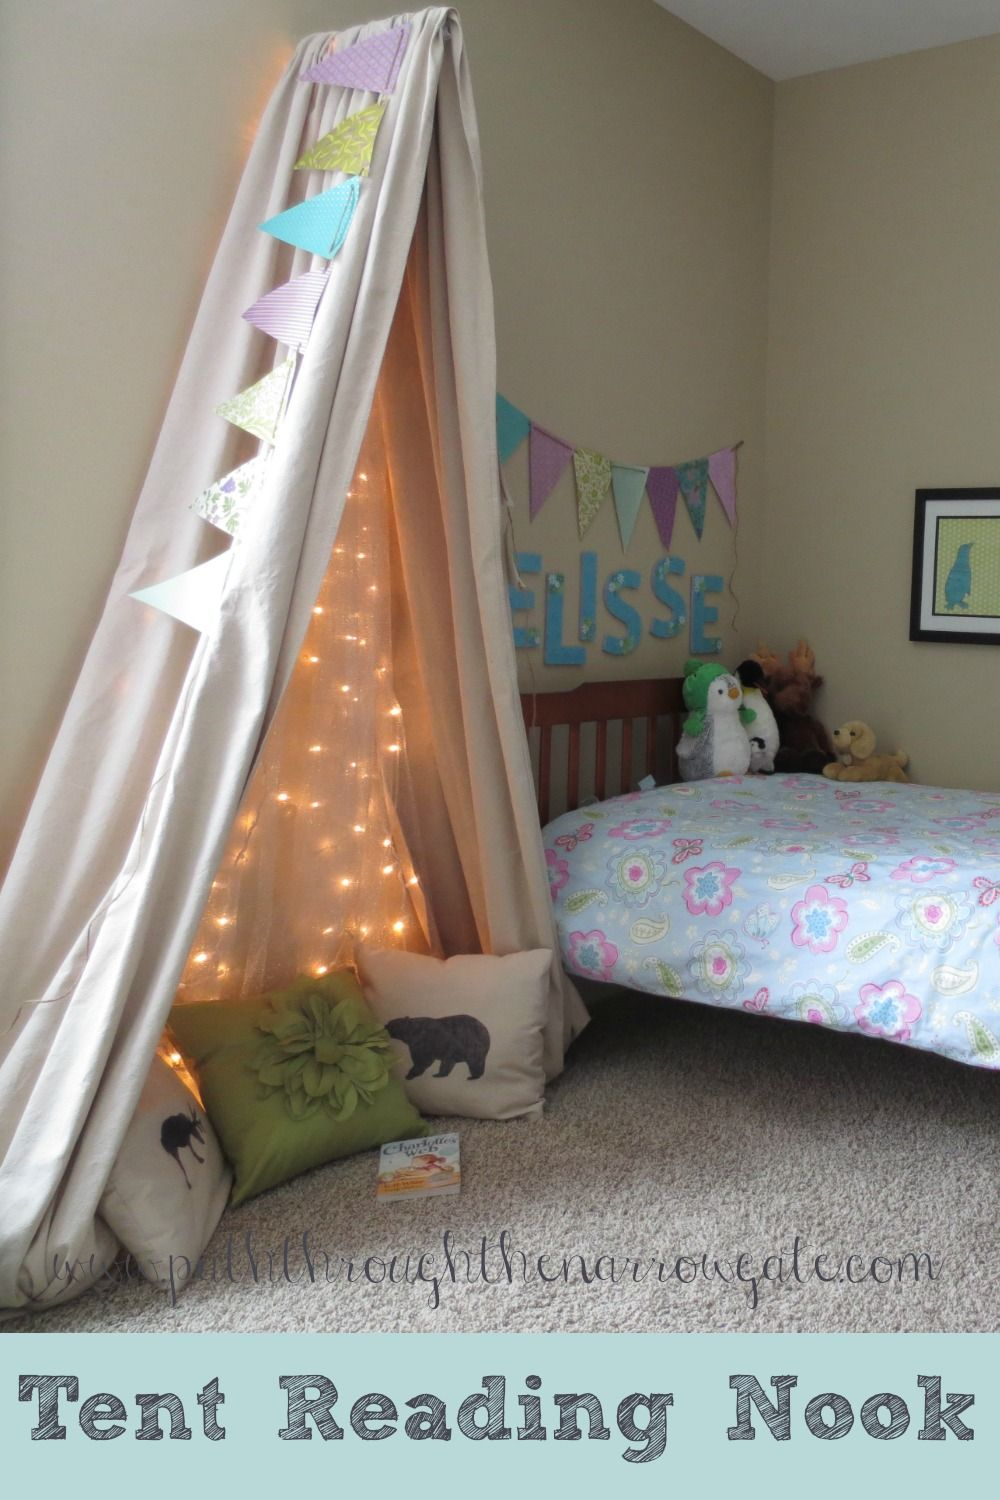 25 Sweet Reading Nook Ideas For Girls Reading Nook Girl Room Room